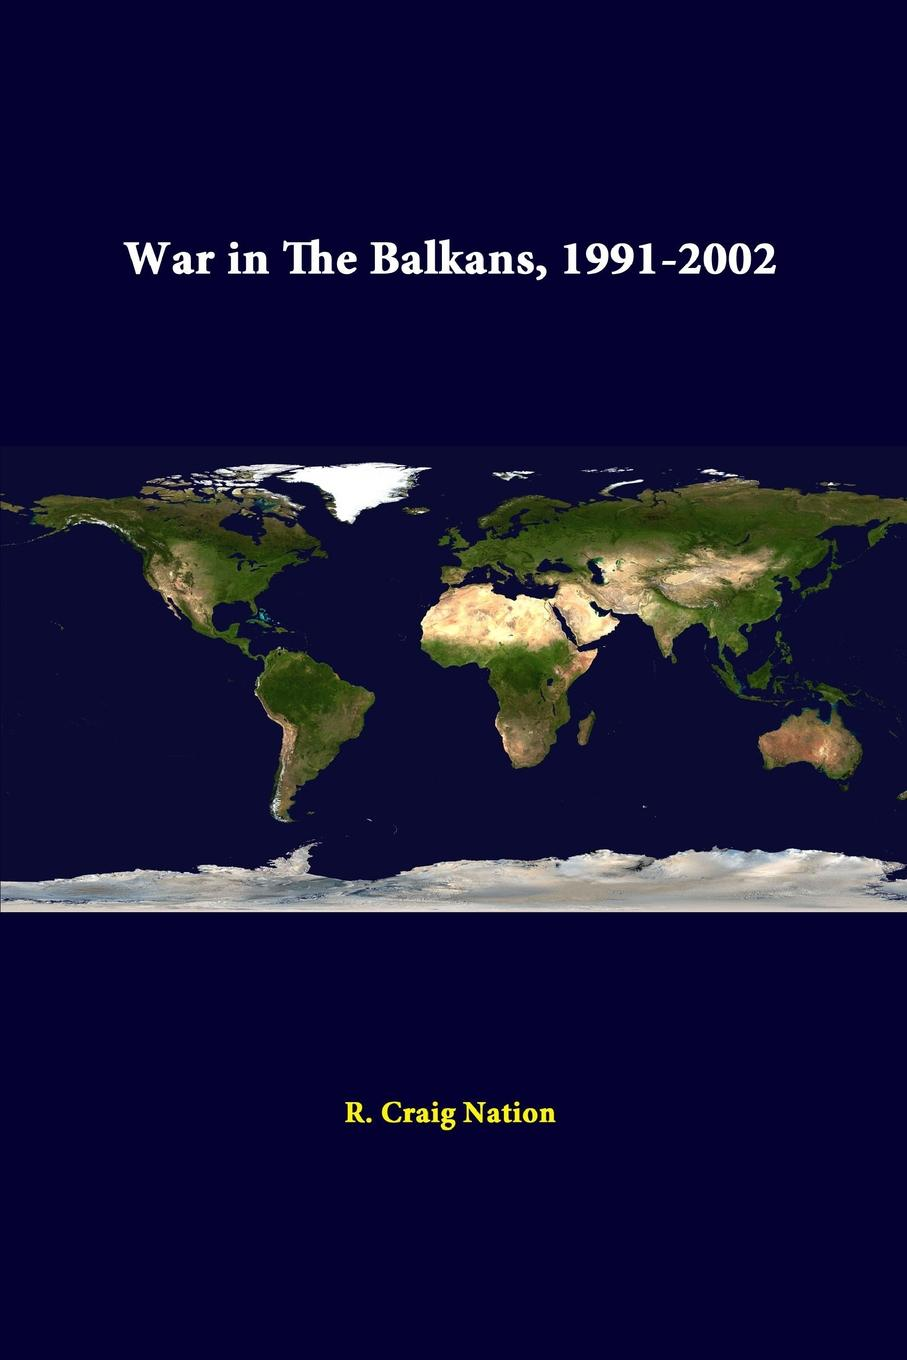 R. Craig Nation, Strategic Studies Institute War in the Balkans, 1991-2002 war photography images of armed conflict and its aftermath